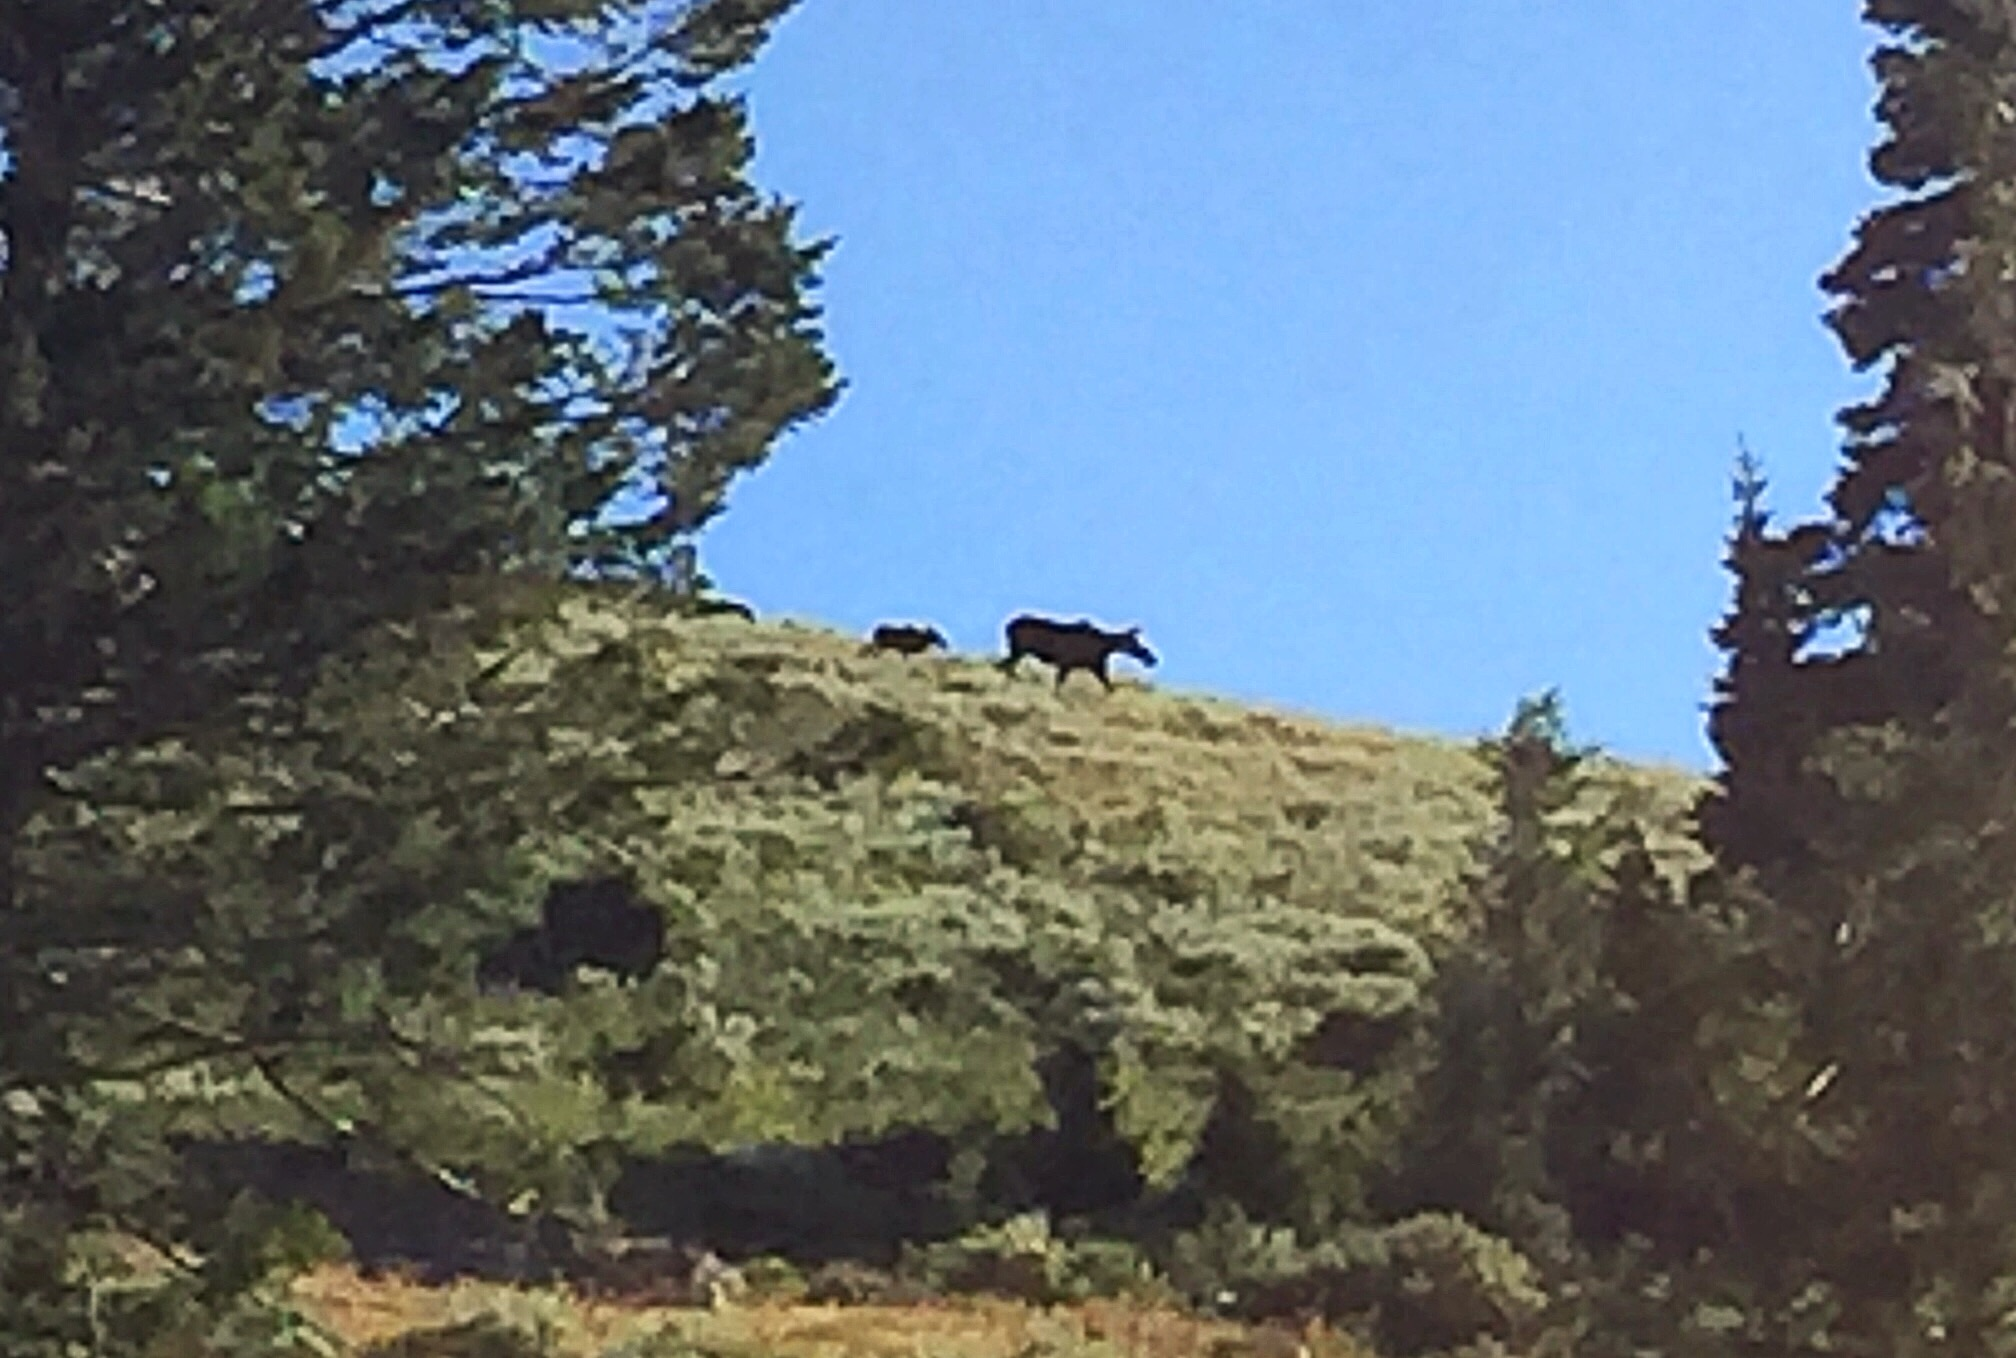 Moose just off the summit of Peak 7834 following the trail from Pine Creek Pass.